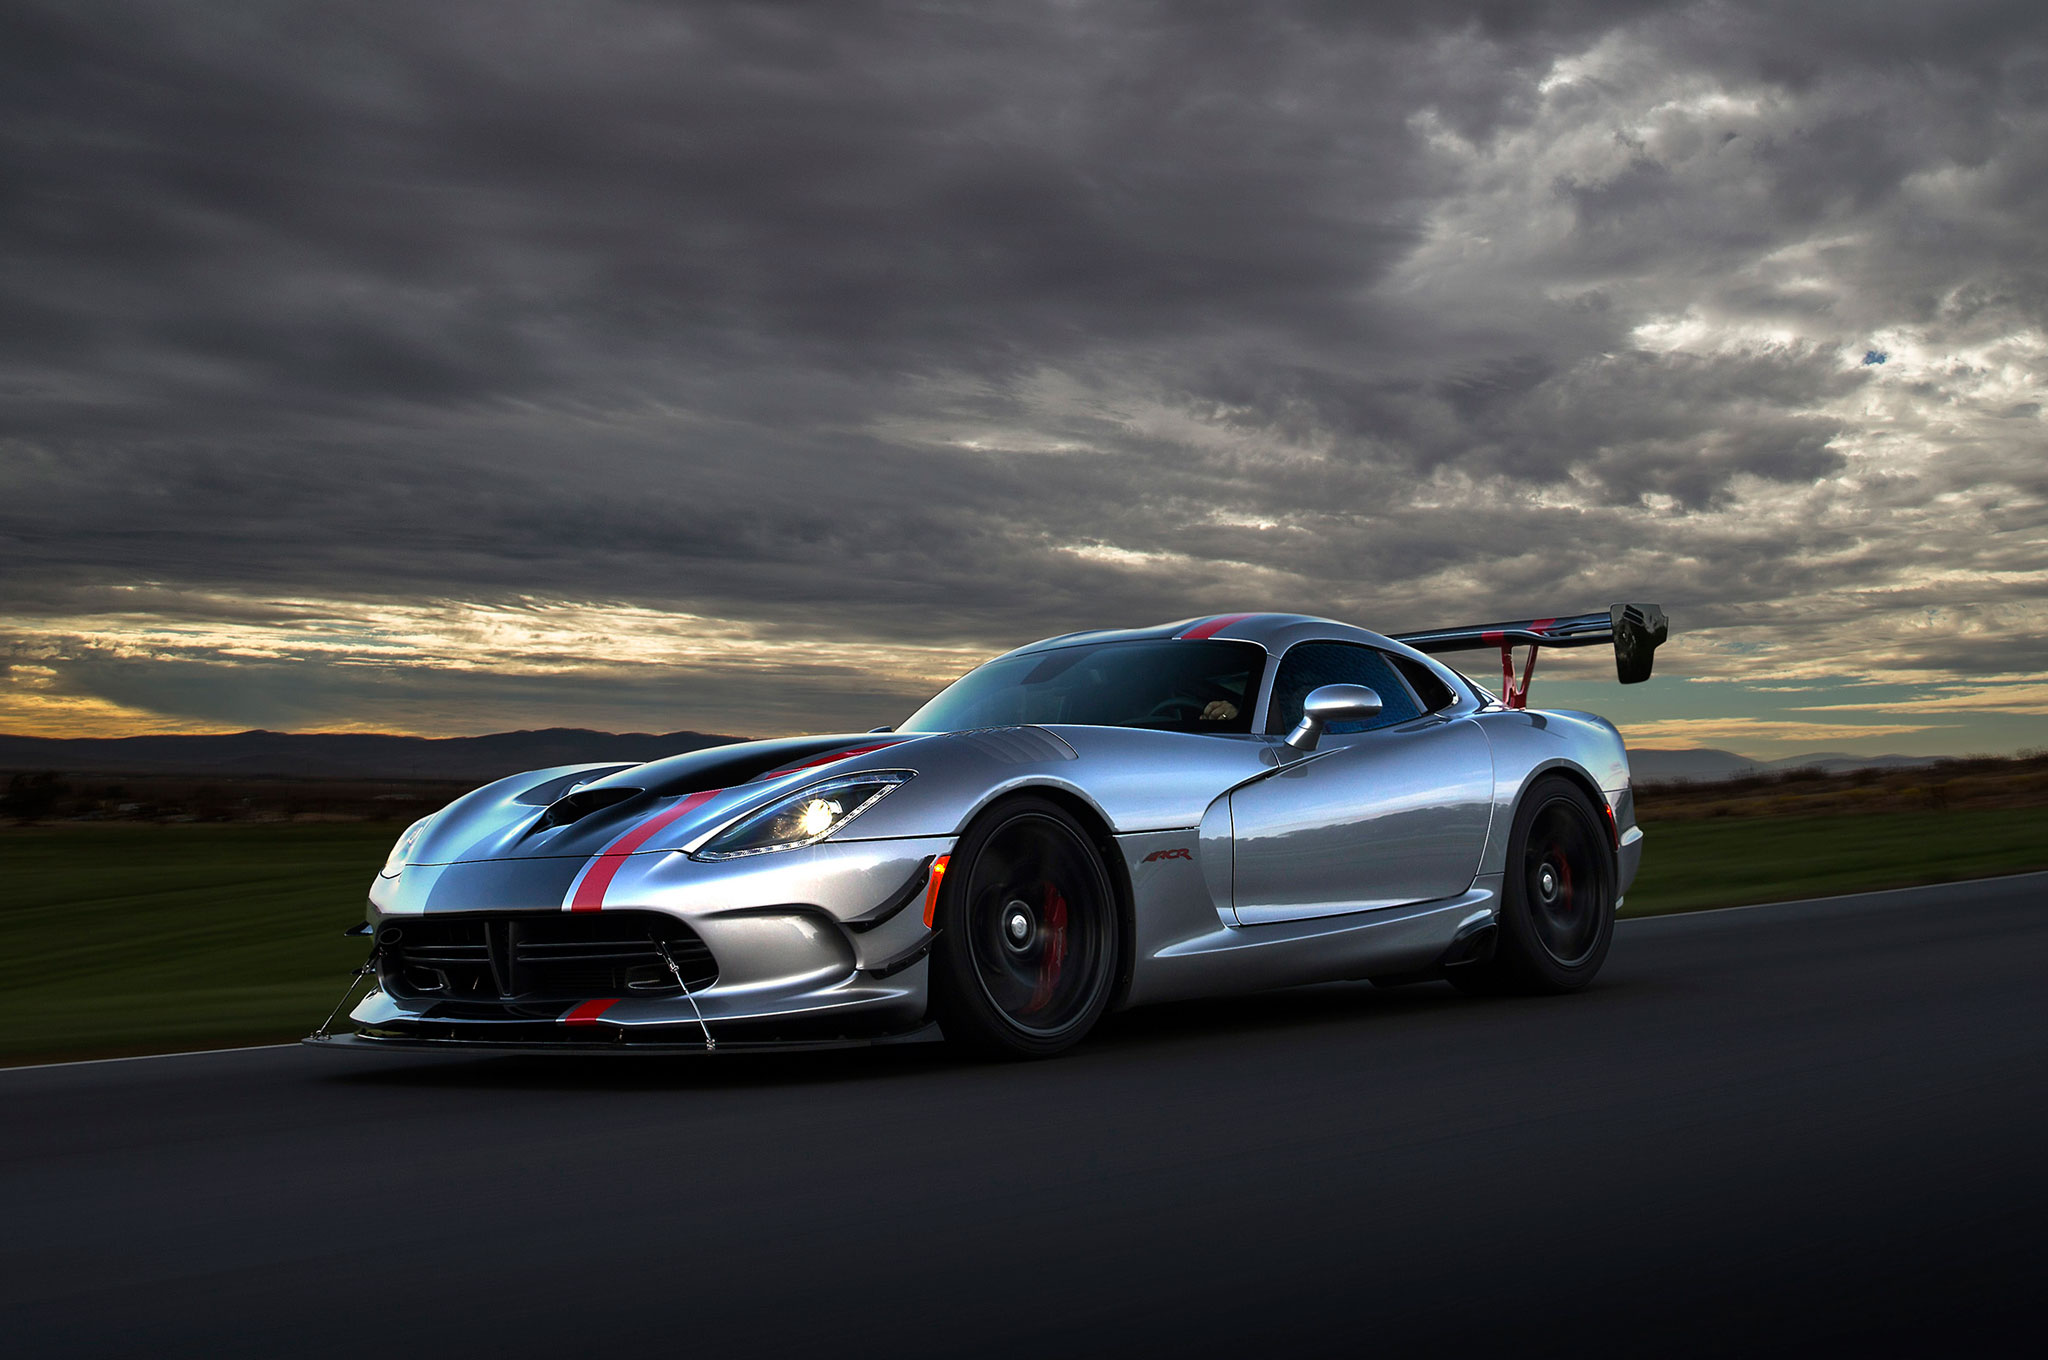 Used 2016 Dodge Viper for sale - Pricing & Features   Edmunds